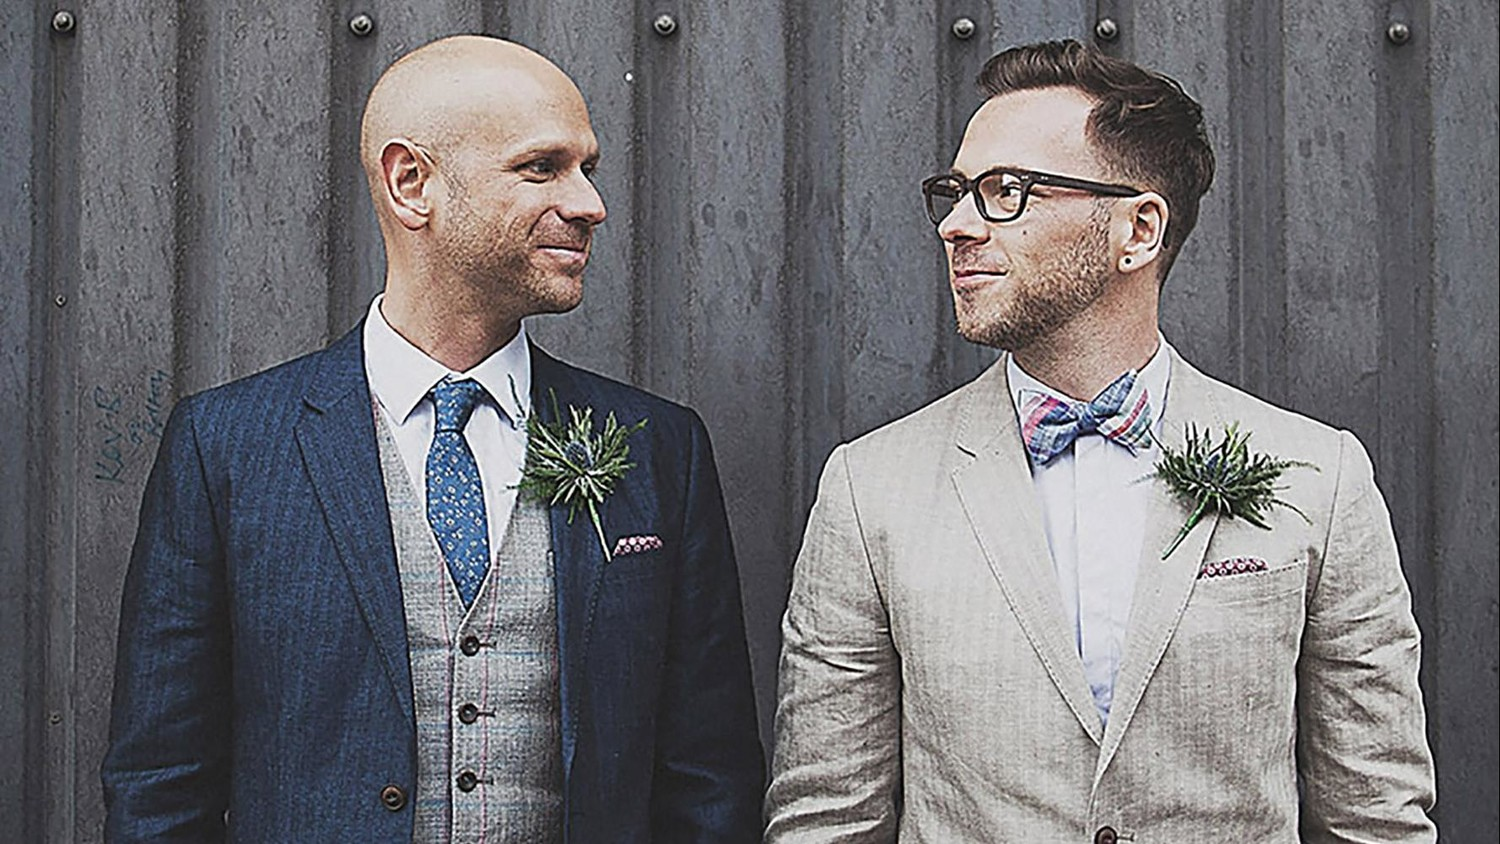 Gay Matrimony. Gay Grooms. Matching Profiles.